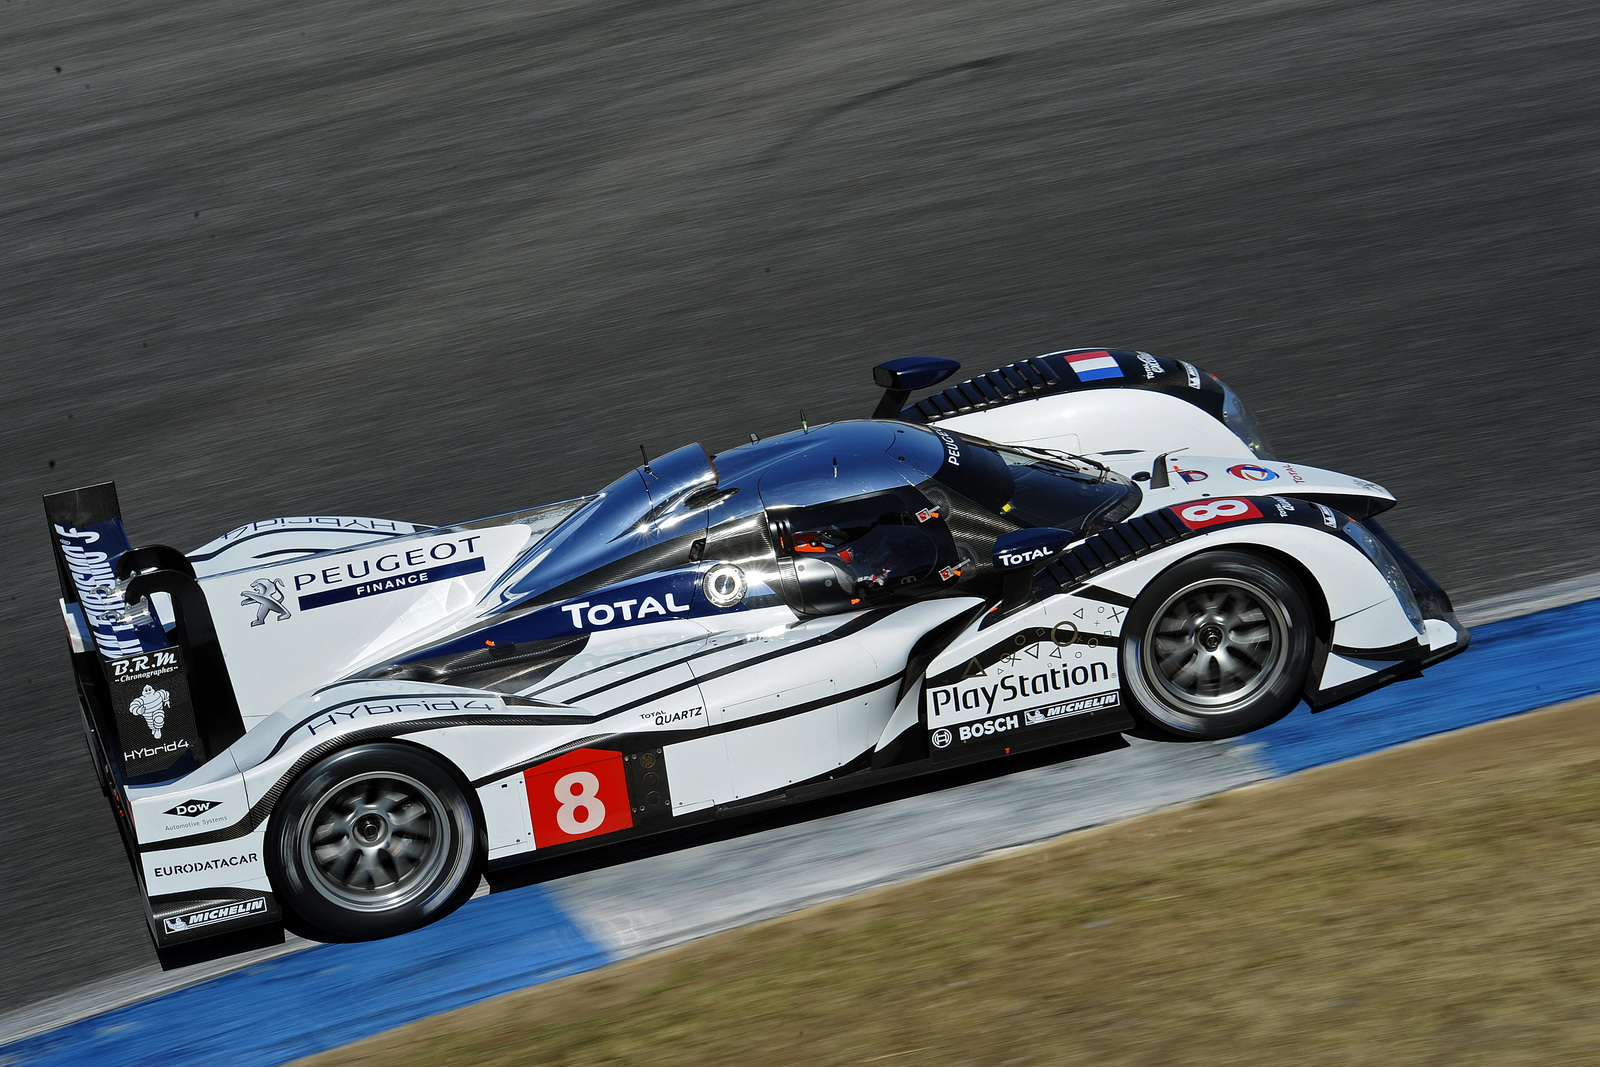 The car during its first track test at Estoril in Portugal during October 2011.